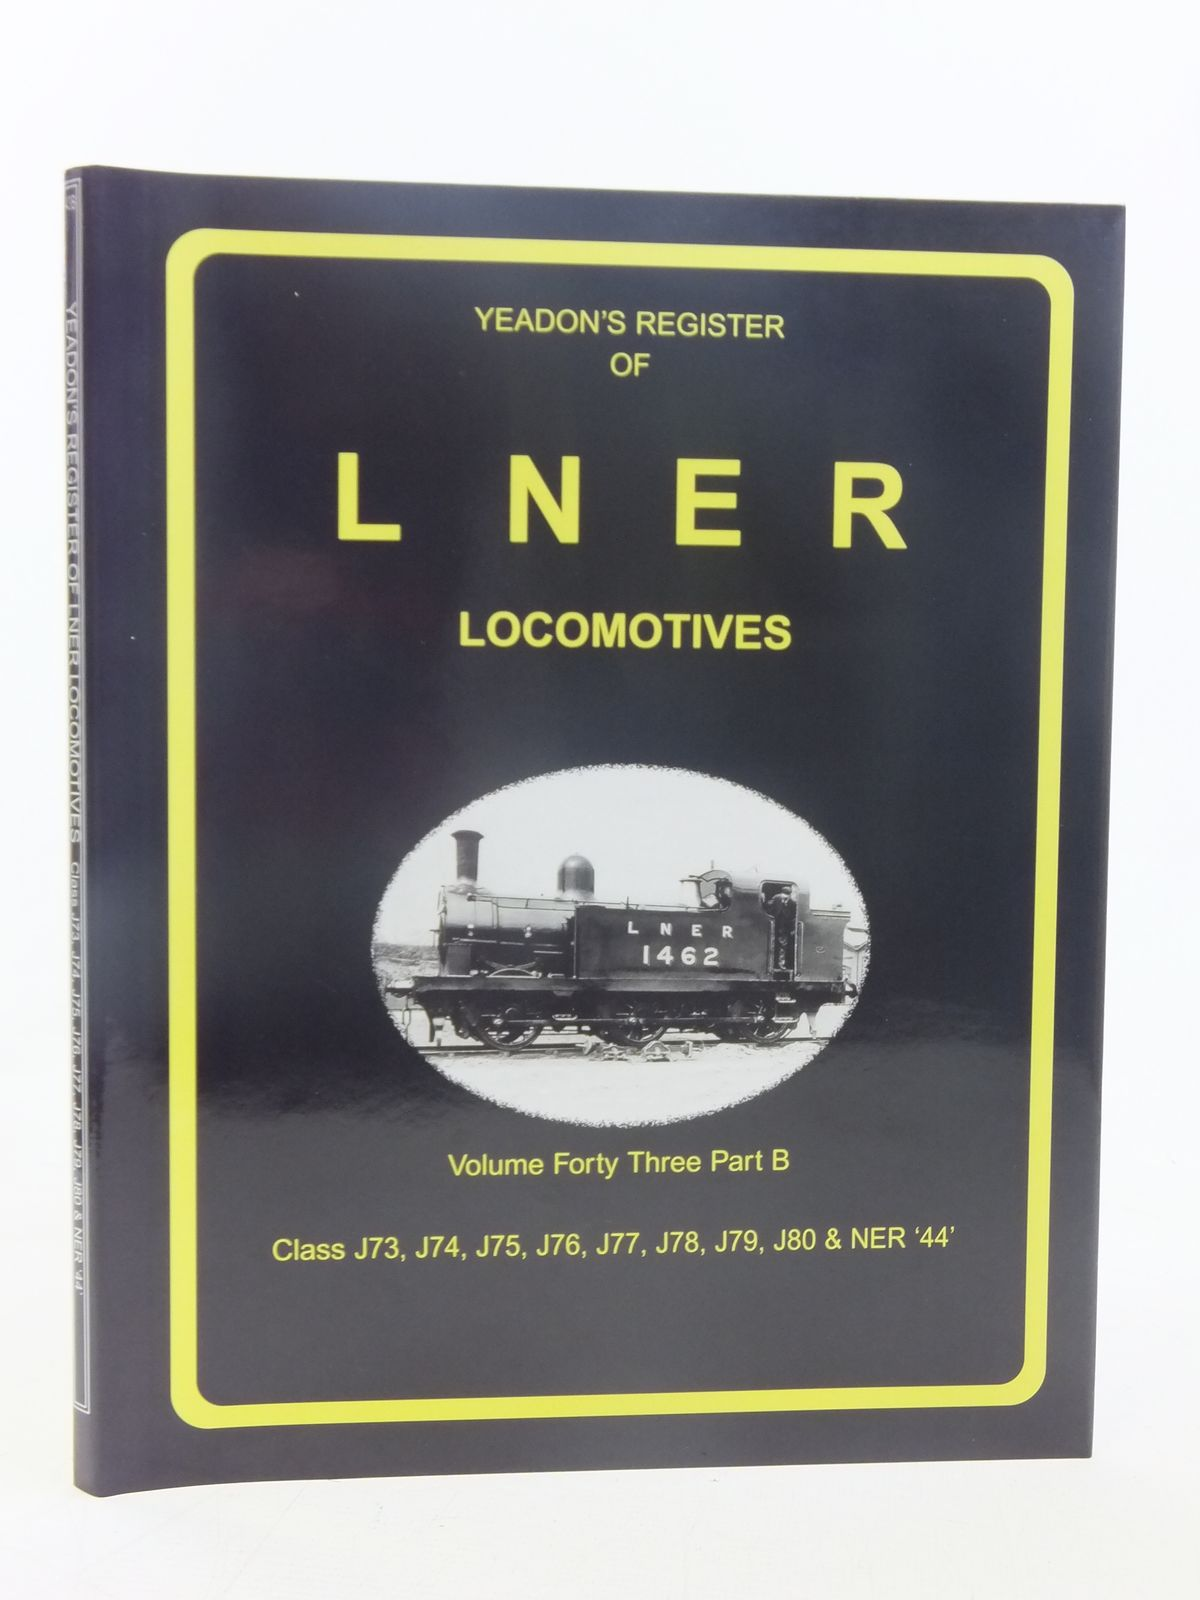 Photo of YEADON'S REGISTER OF LNER LOCOMOTIVES VOLUME FORTY THREE PART B published by Book Law Publications, Challenger Publications (STOCK CODE: 1606920)  for sale by Stella & Rose's Books